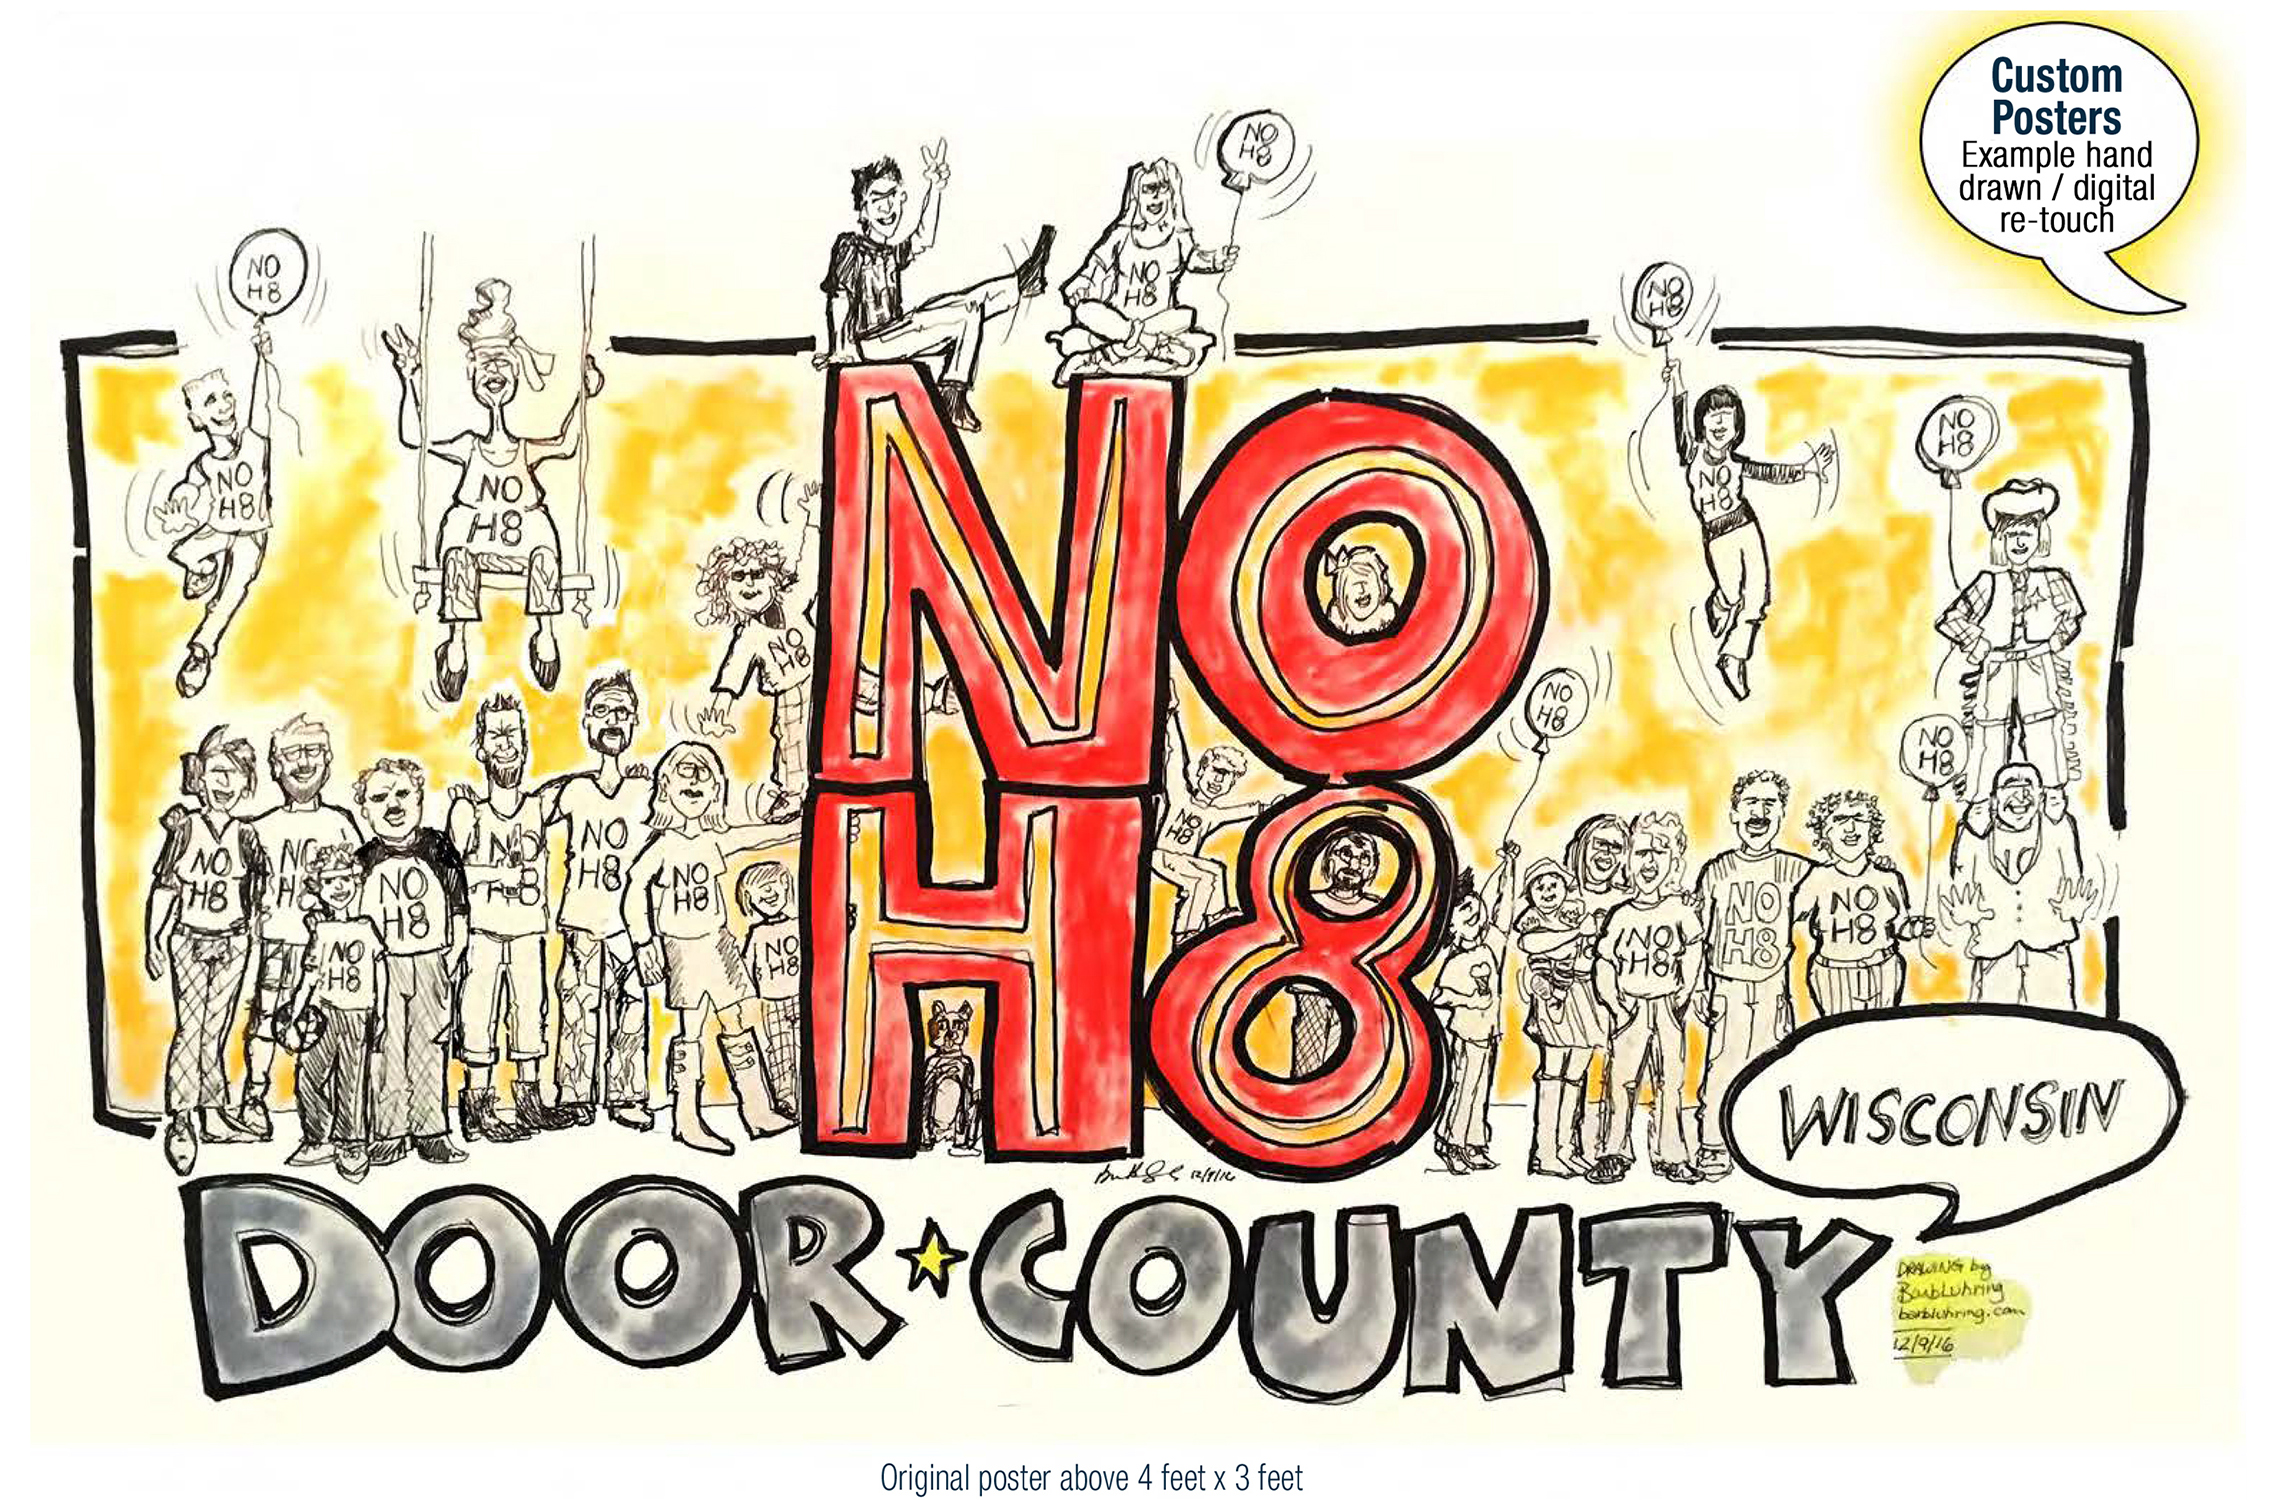 Following the 2016 election, the community of Door County, Wisconsin came together to reject hate and embrace diversity. Cartoon by Geez! I'm Angry